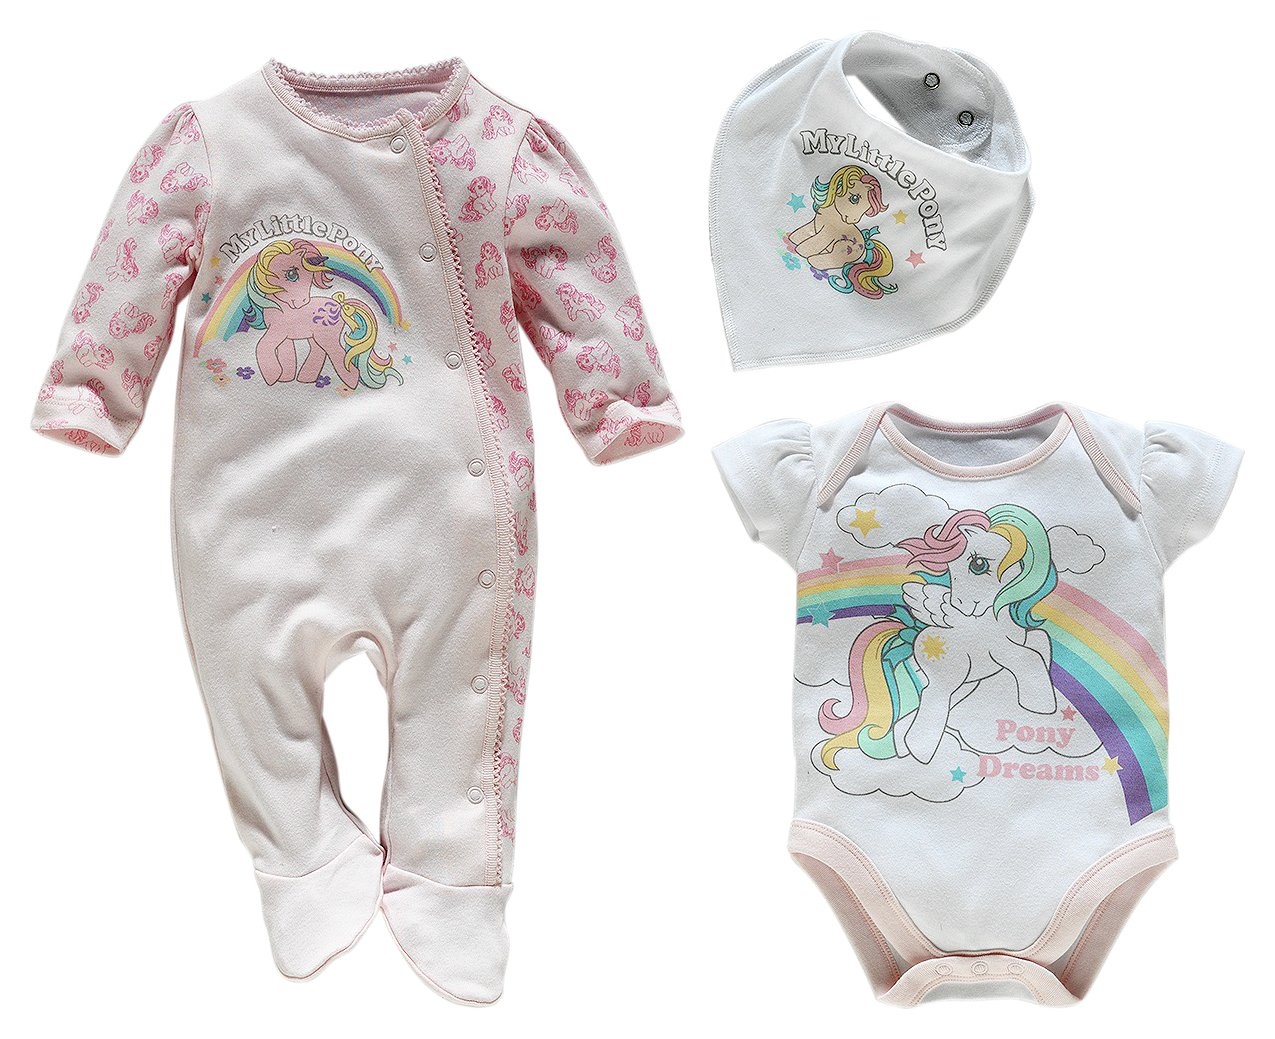 Image of My Little Pony - Pink 3 Piece Baby - Gift Set ? 3? 6 Months